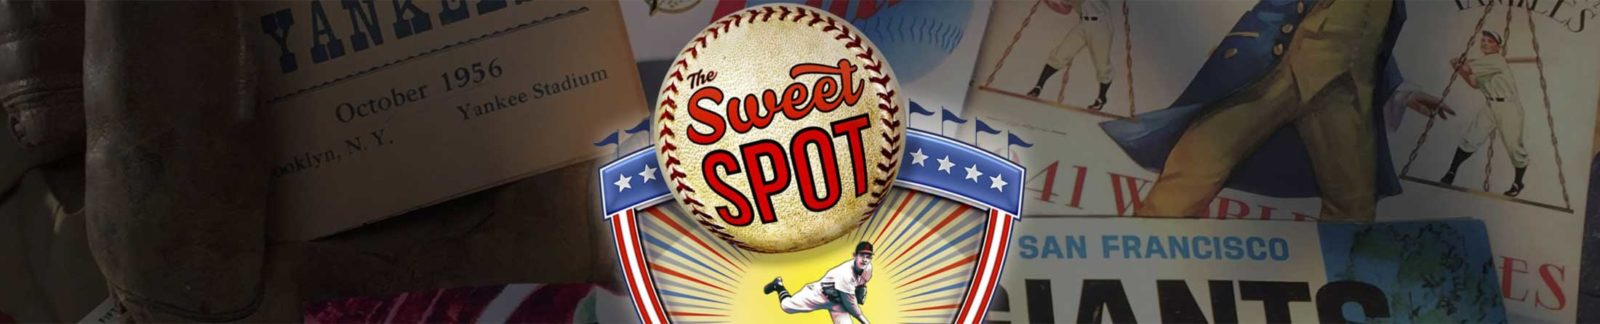 The Sweet Spot - Baseball documentary header